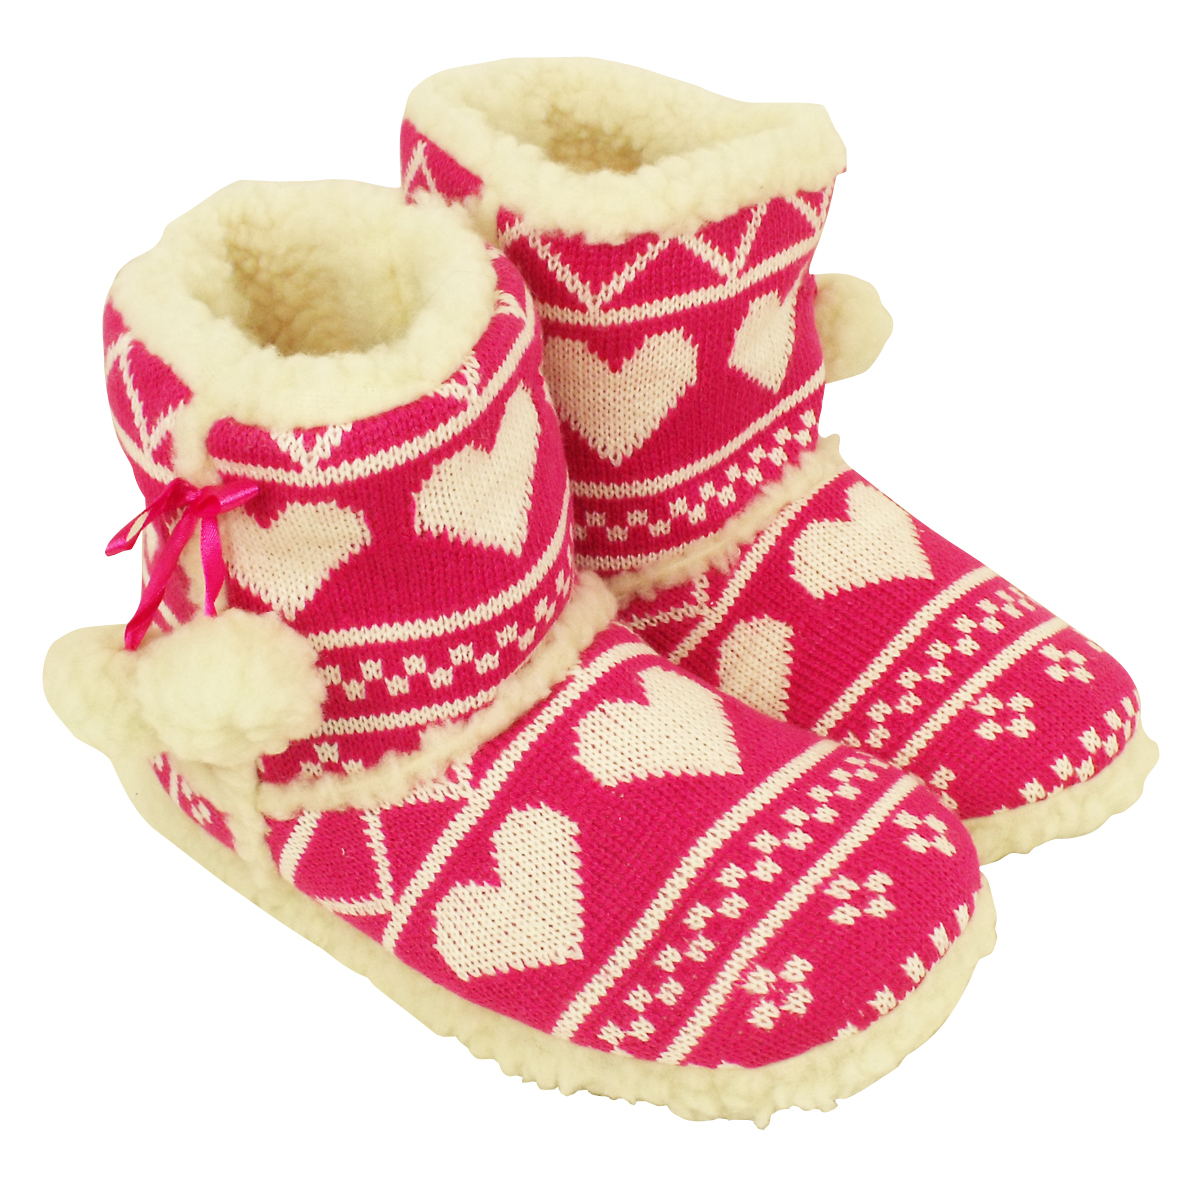 Quality Eskimo Bootee Ankle Boot Slippers Women Furry Warm Slipper ...